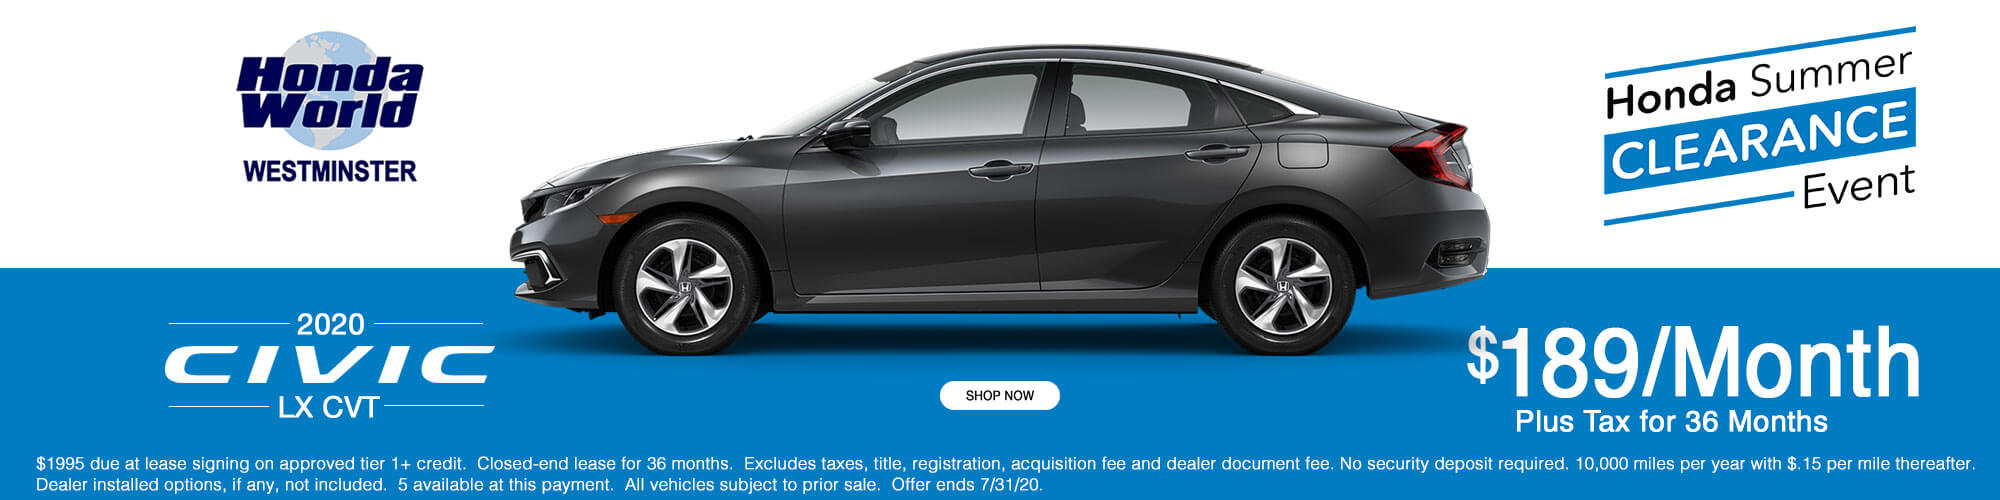 2020 Honda Civic LX Lease Offer $189 a month